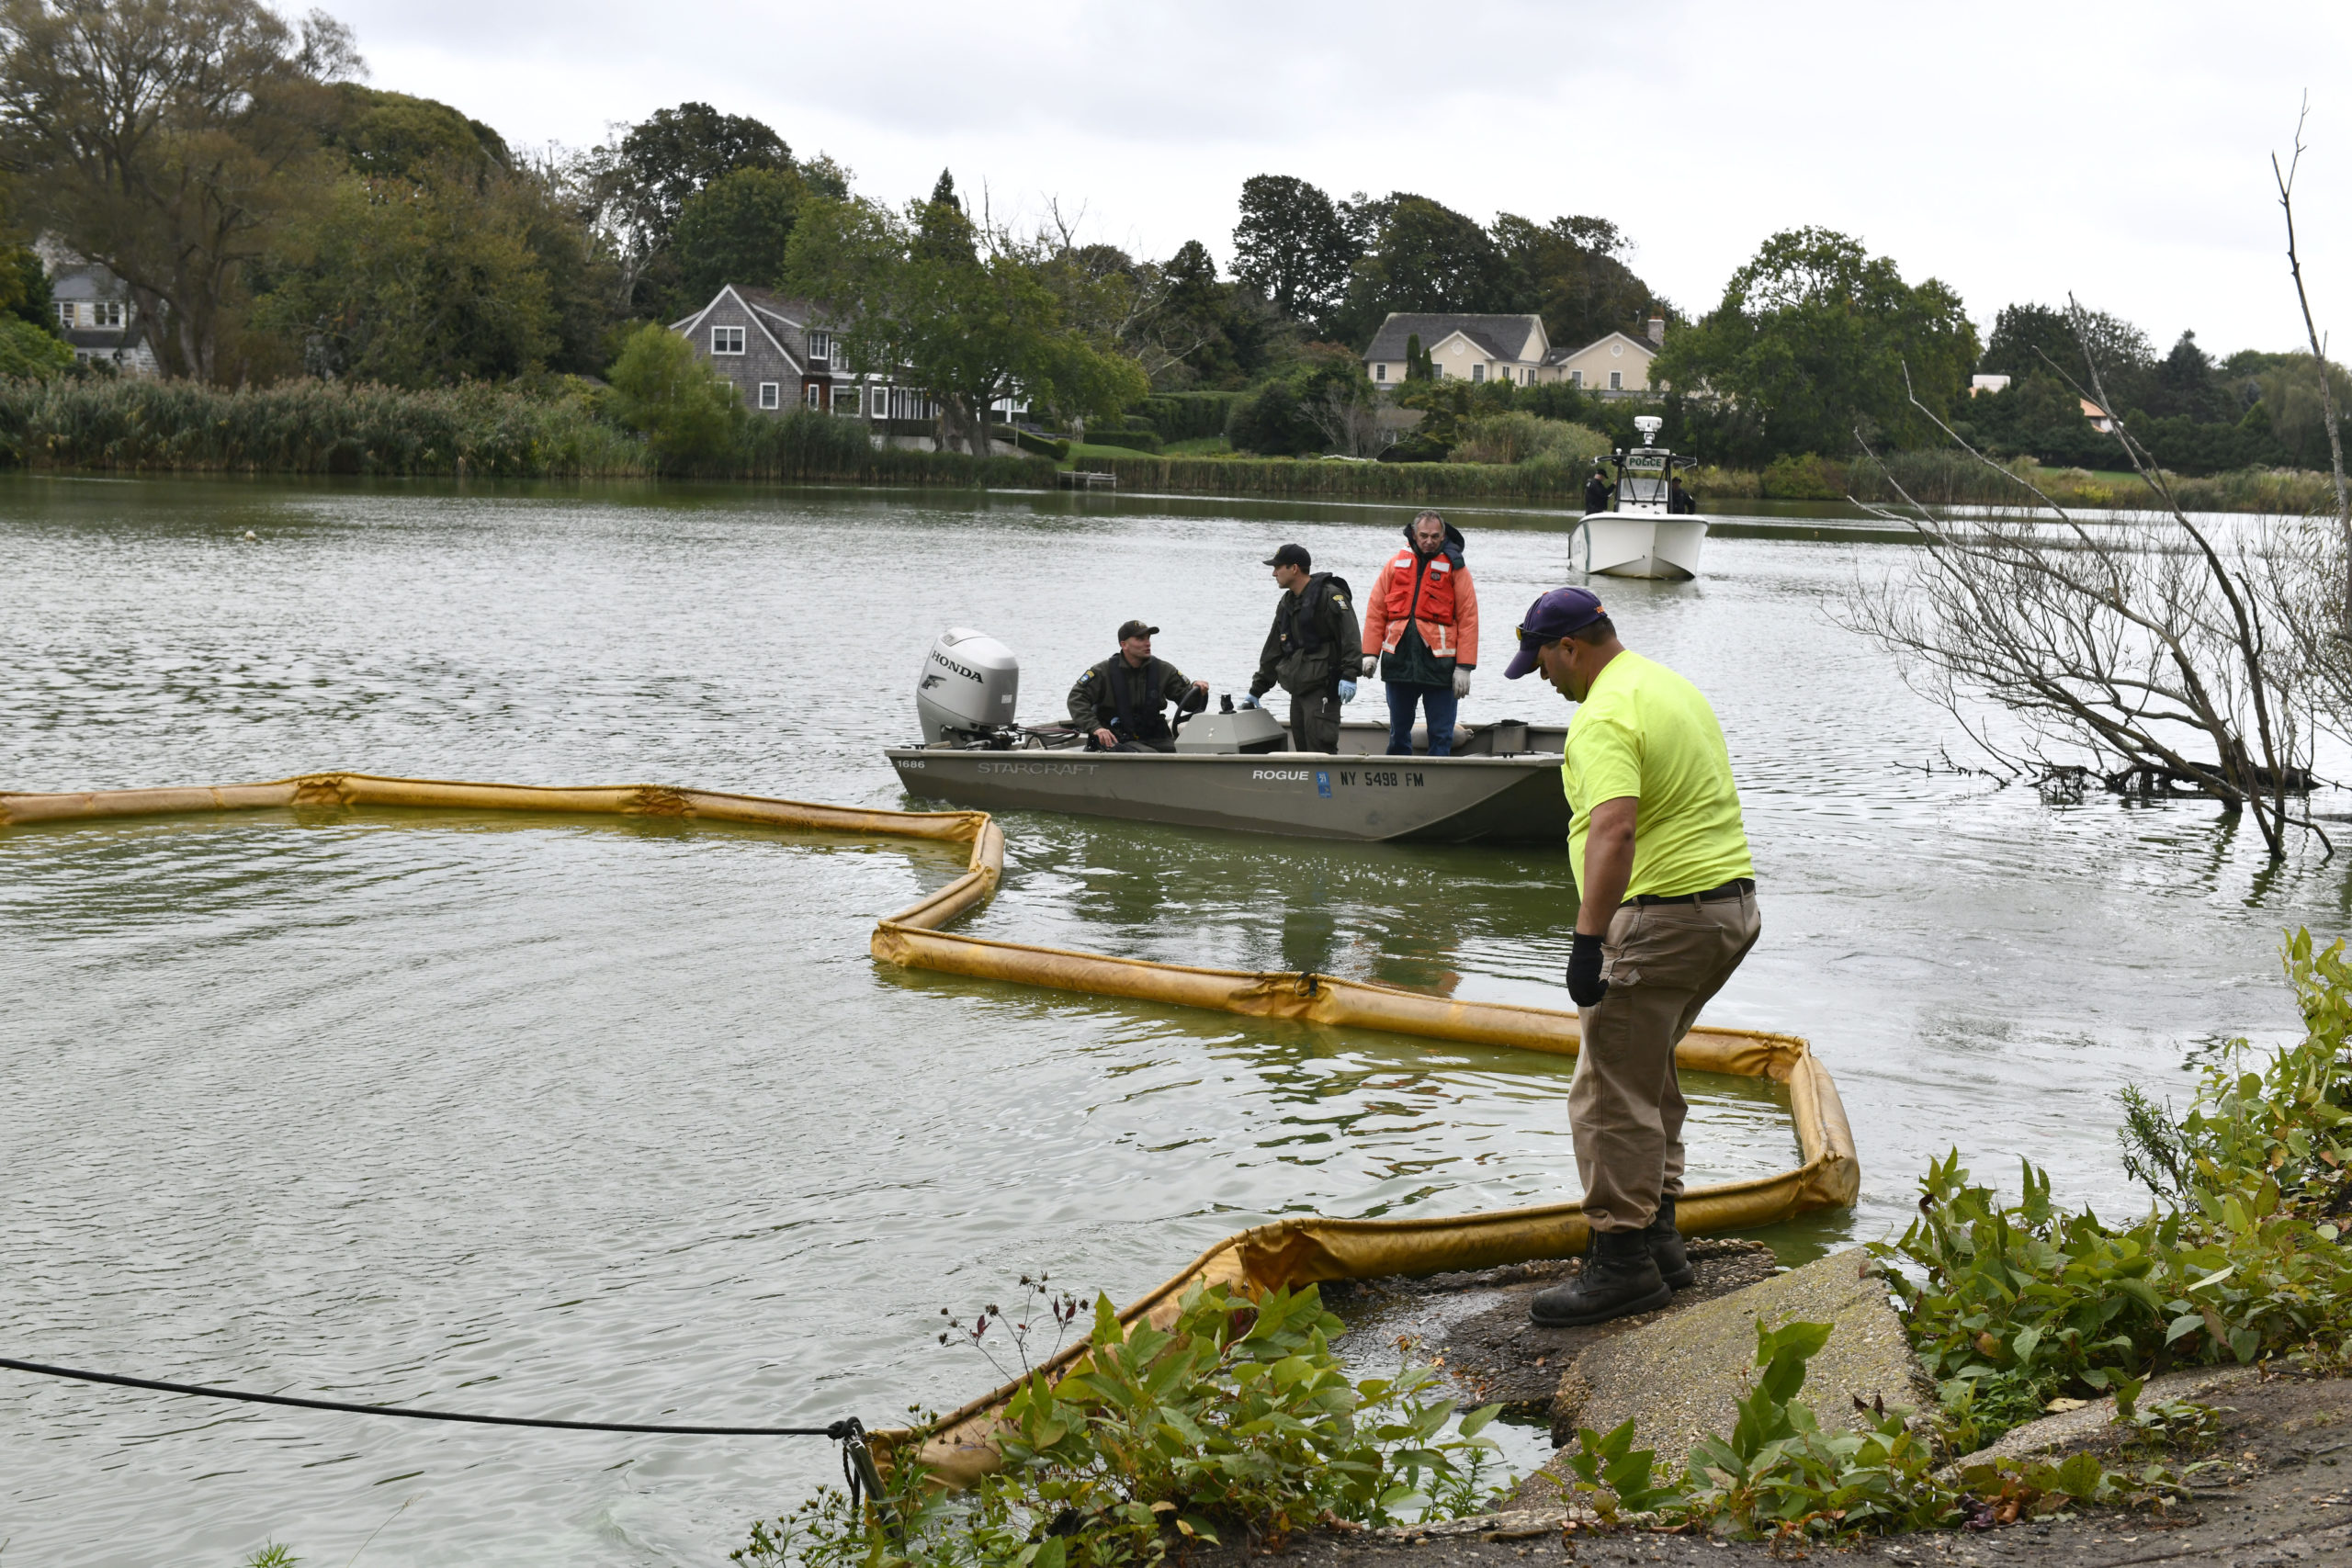 The Express News Group will host a press session to discuss the health of Lake Agawam in Southampton Village, and what can be done to clean it up. DANA SHAW